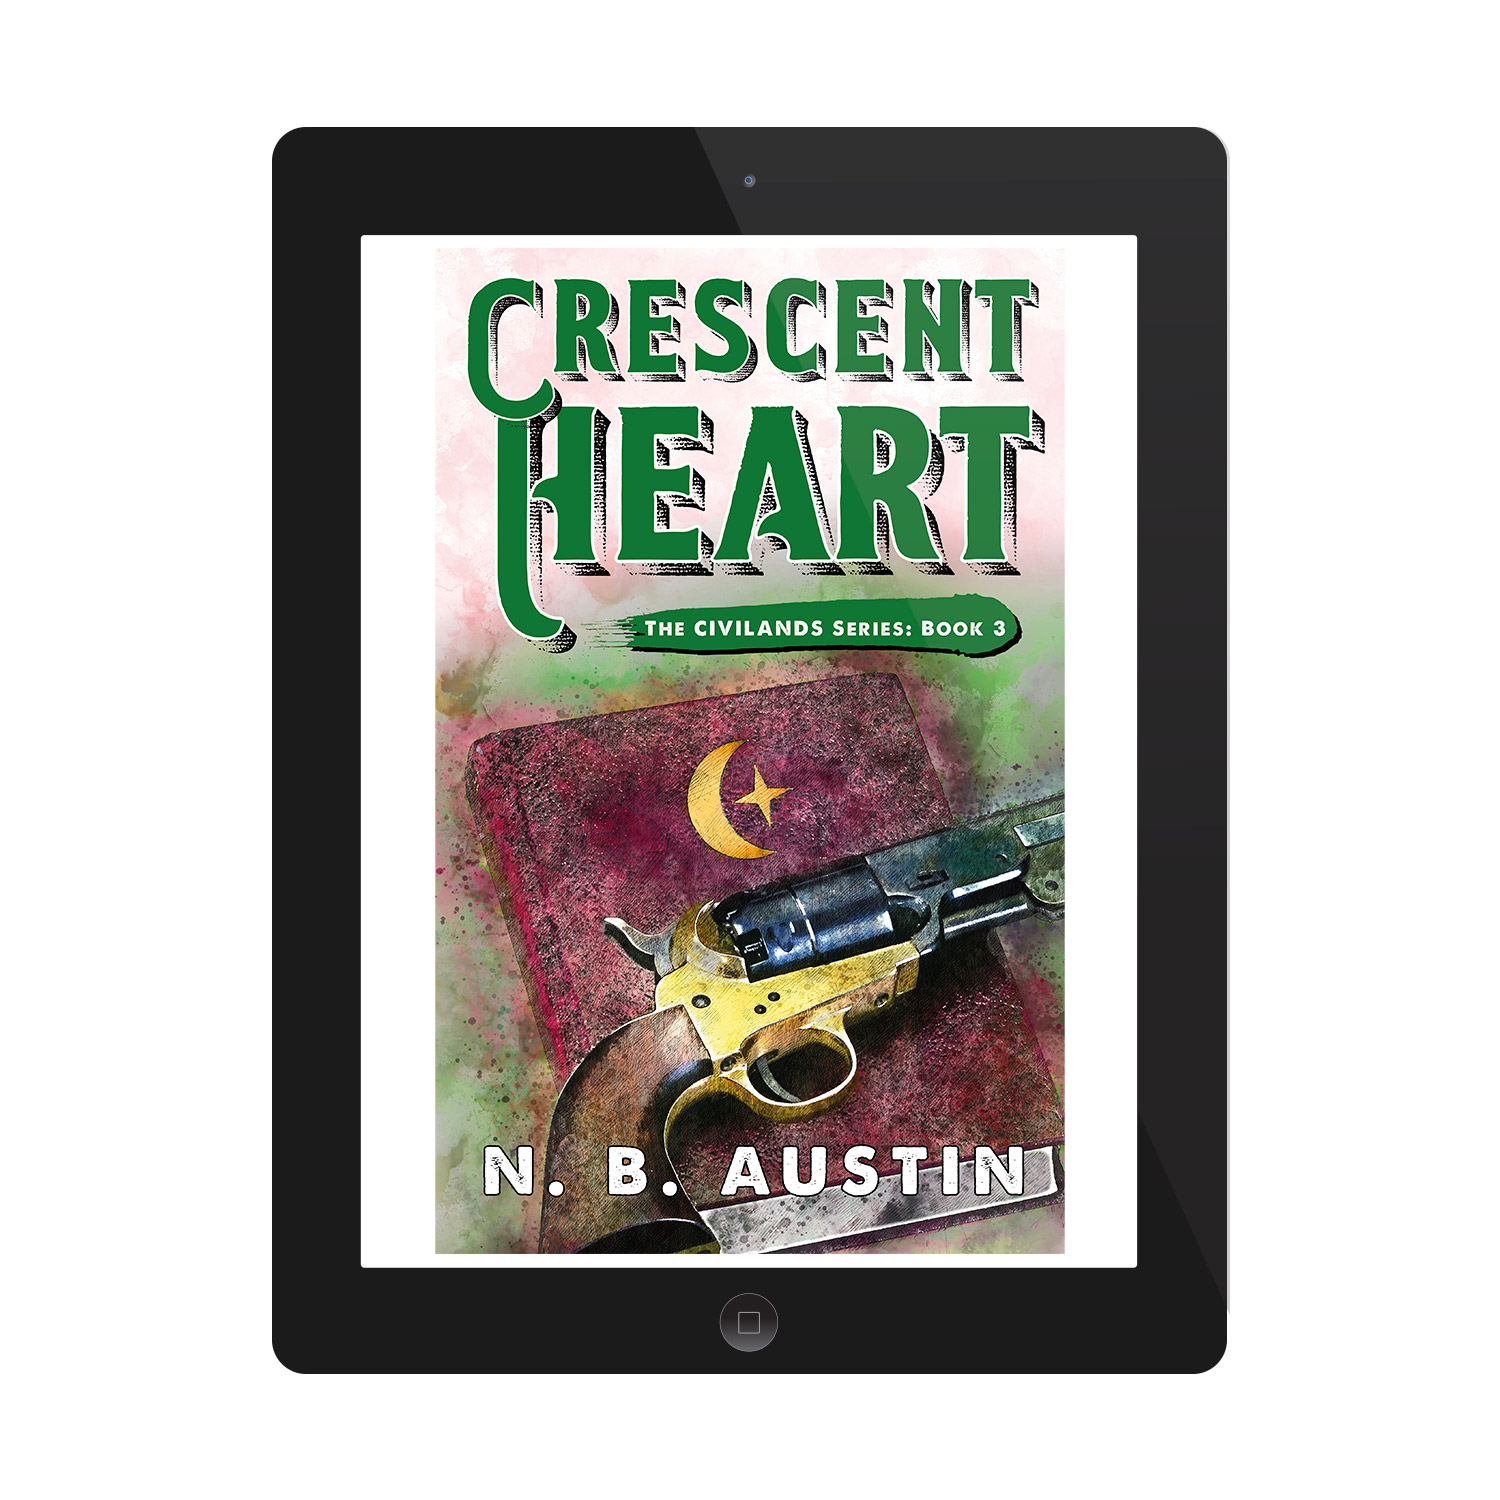 'Crescent Heart' is a sweeping alt-history Western fantasy novel, by N B Austin. The book cover and interior were designed by Mark Thomas, of coverness.com. To find out more about my book design services, please visit www.coverness.com.